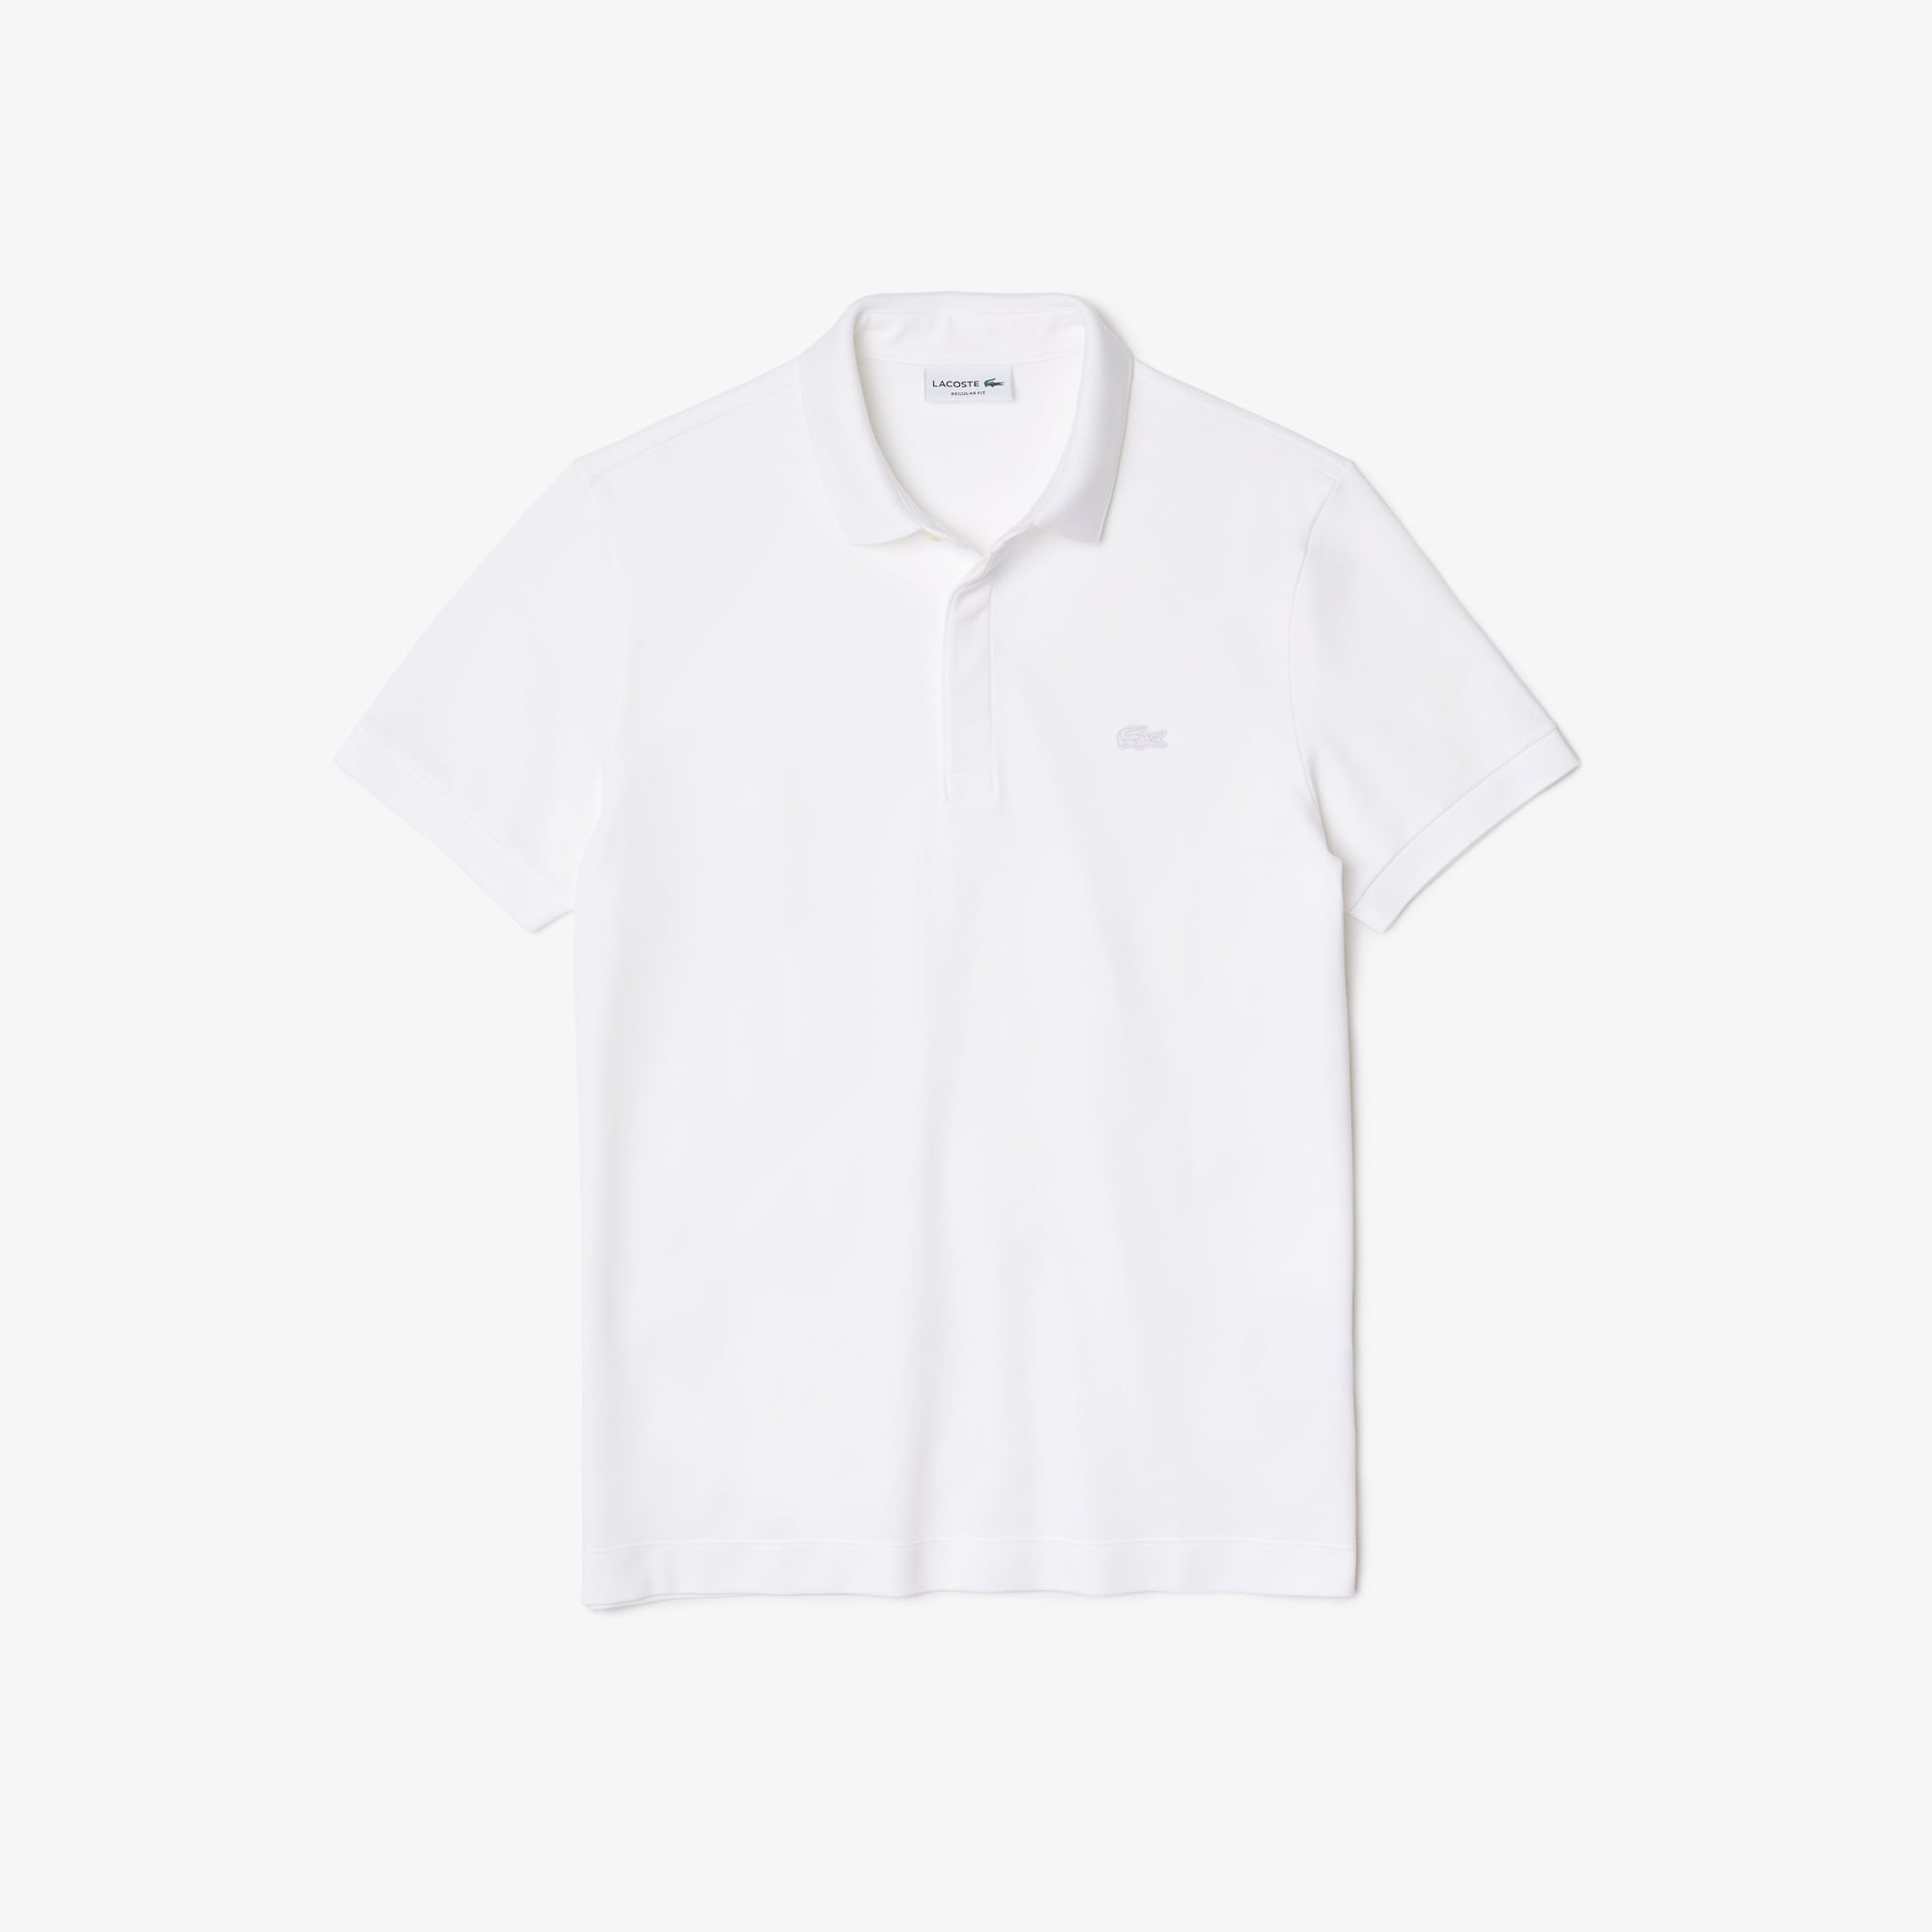 Lacoste - Paris Polo regular fit Lacoste en piqué de coton stretch - 5